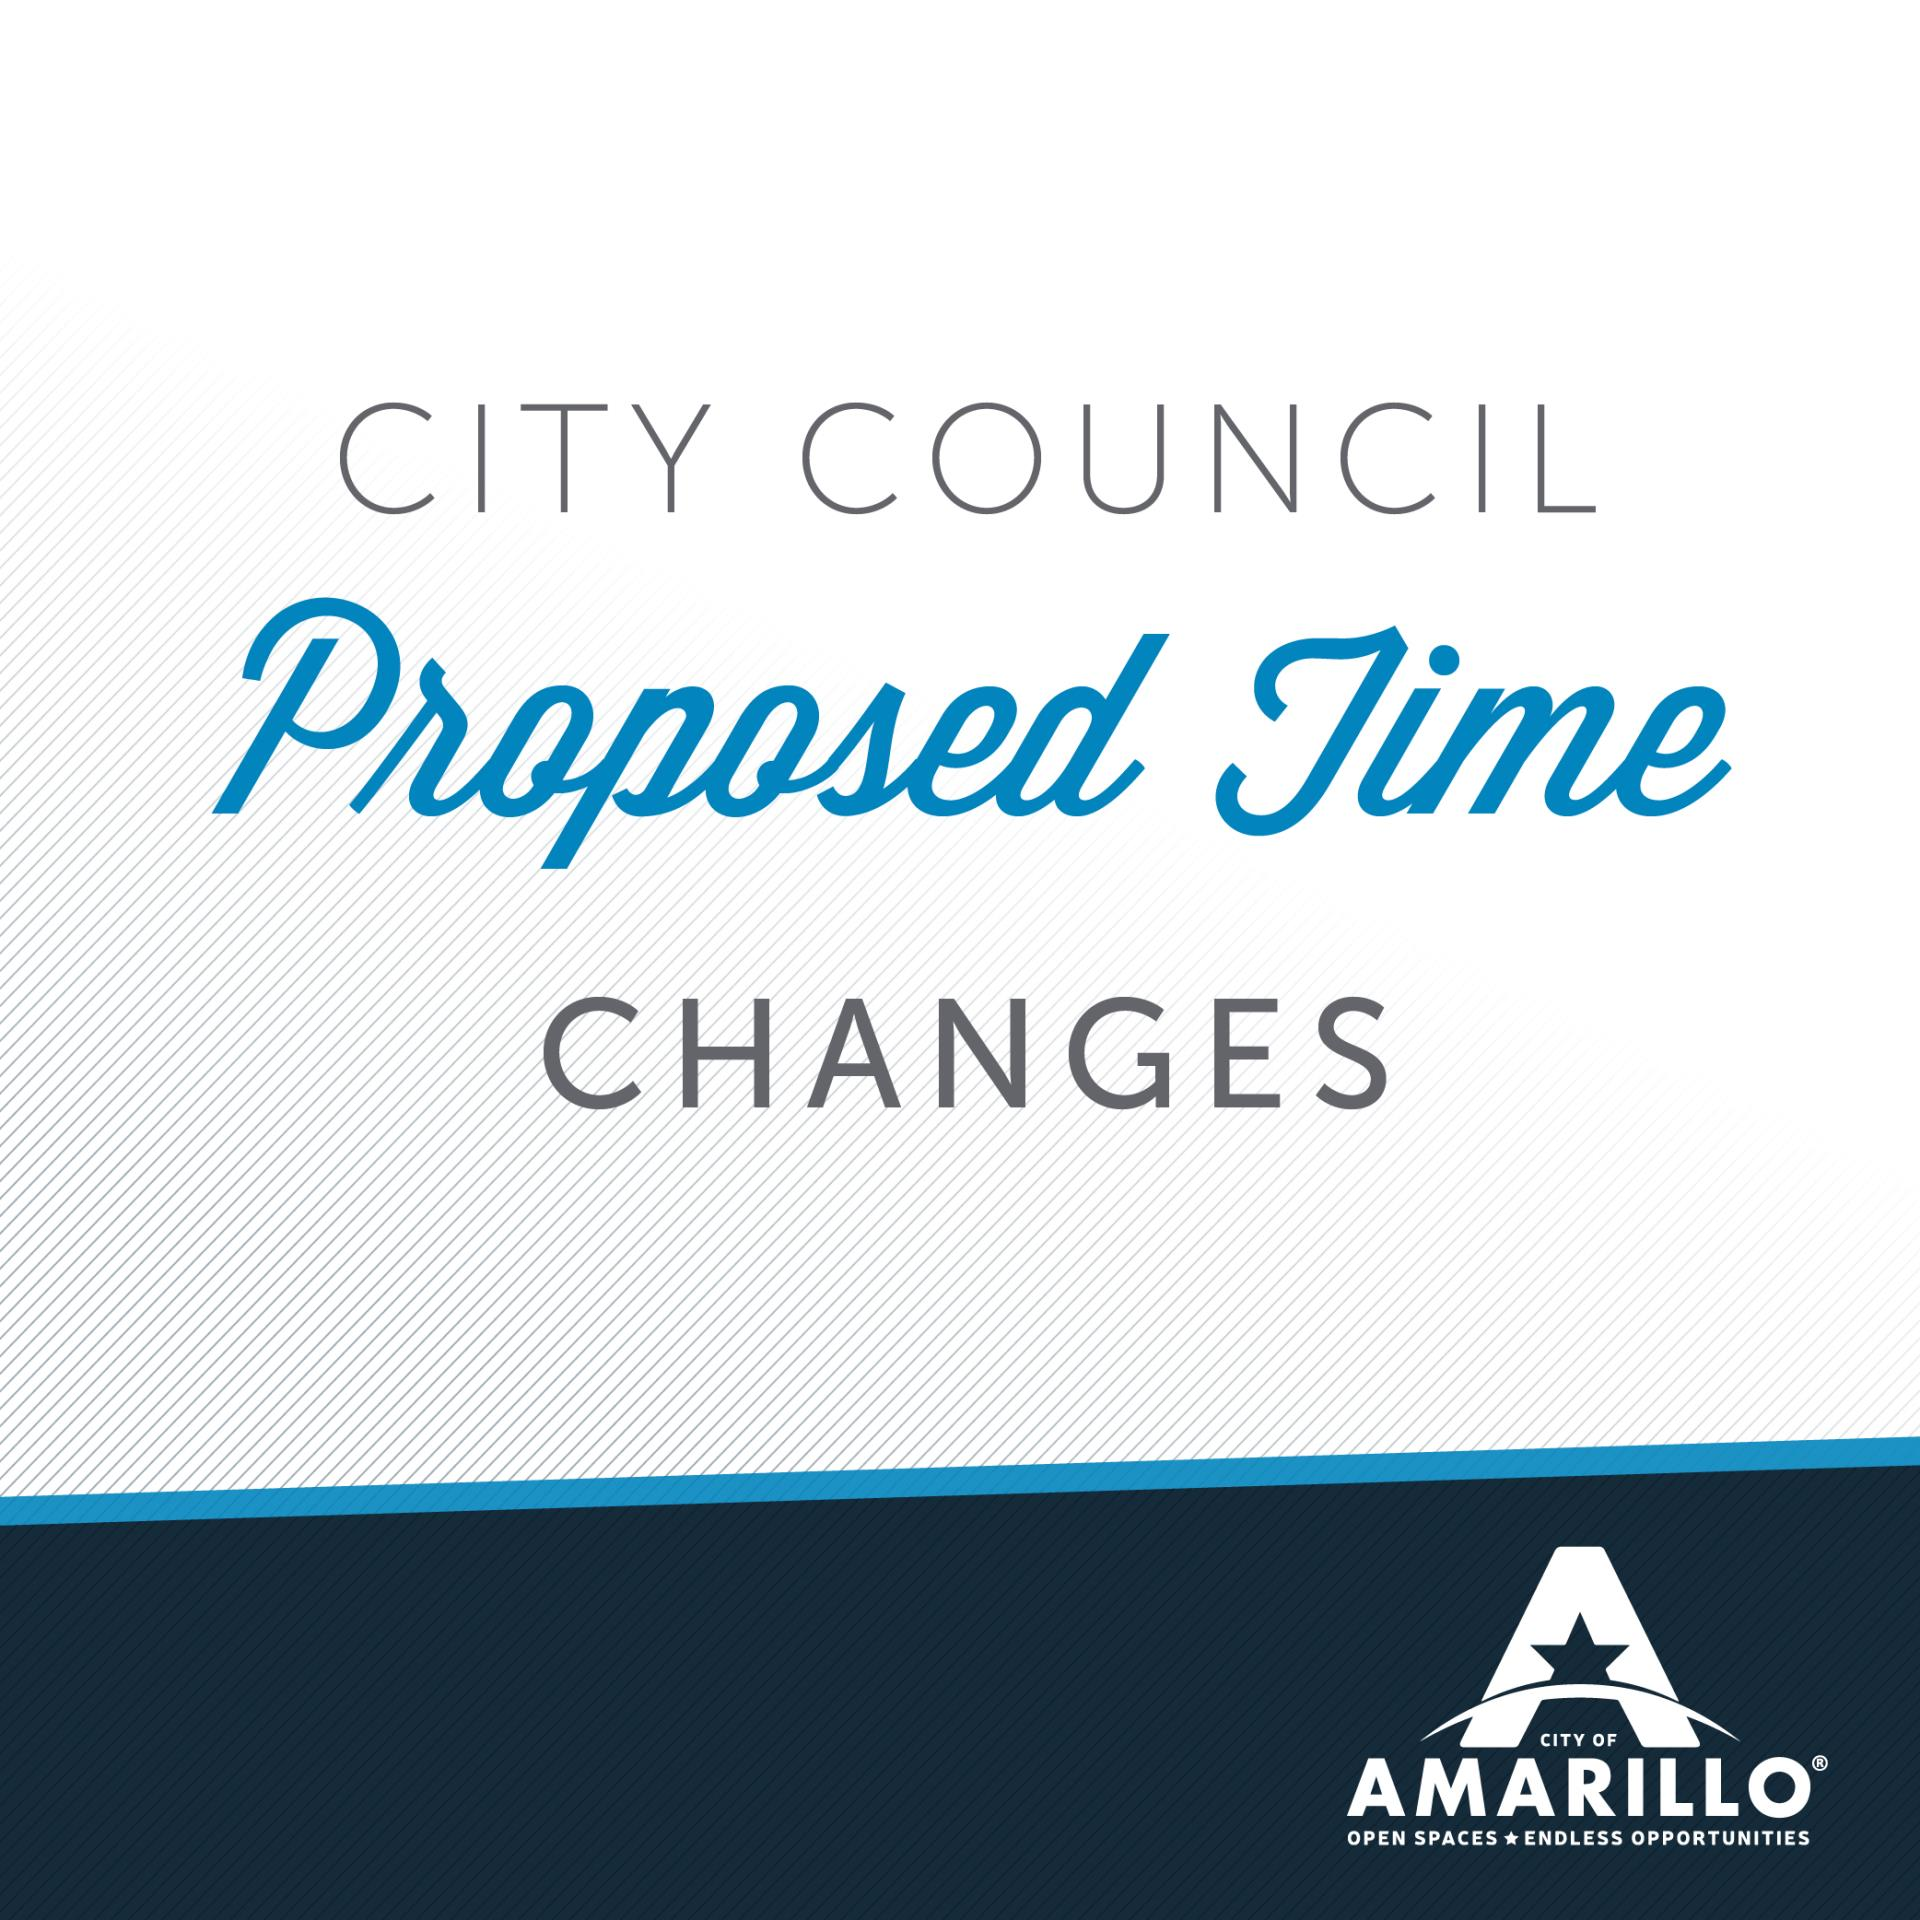 City Council Meeting Schedule Announced for September